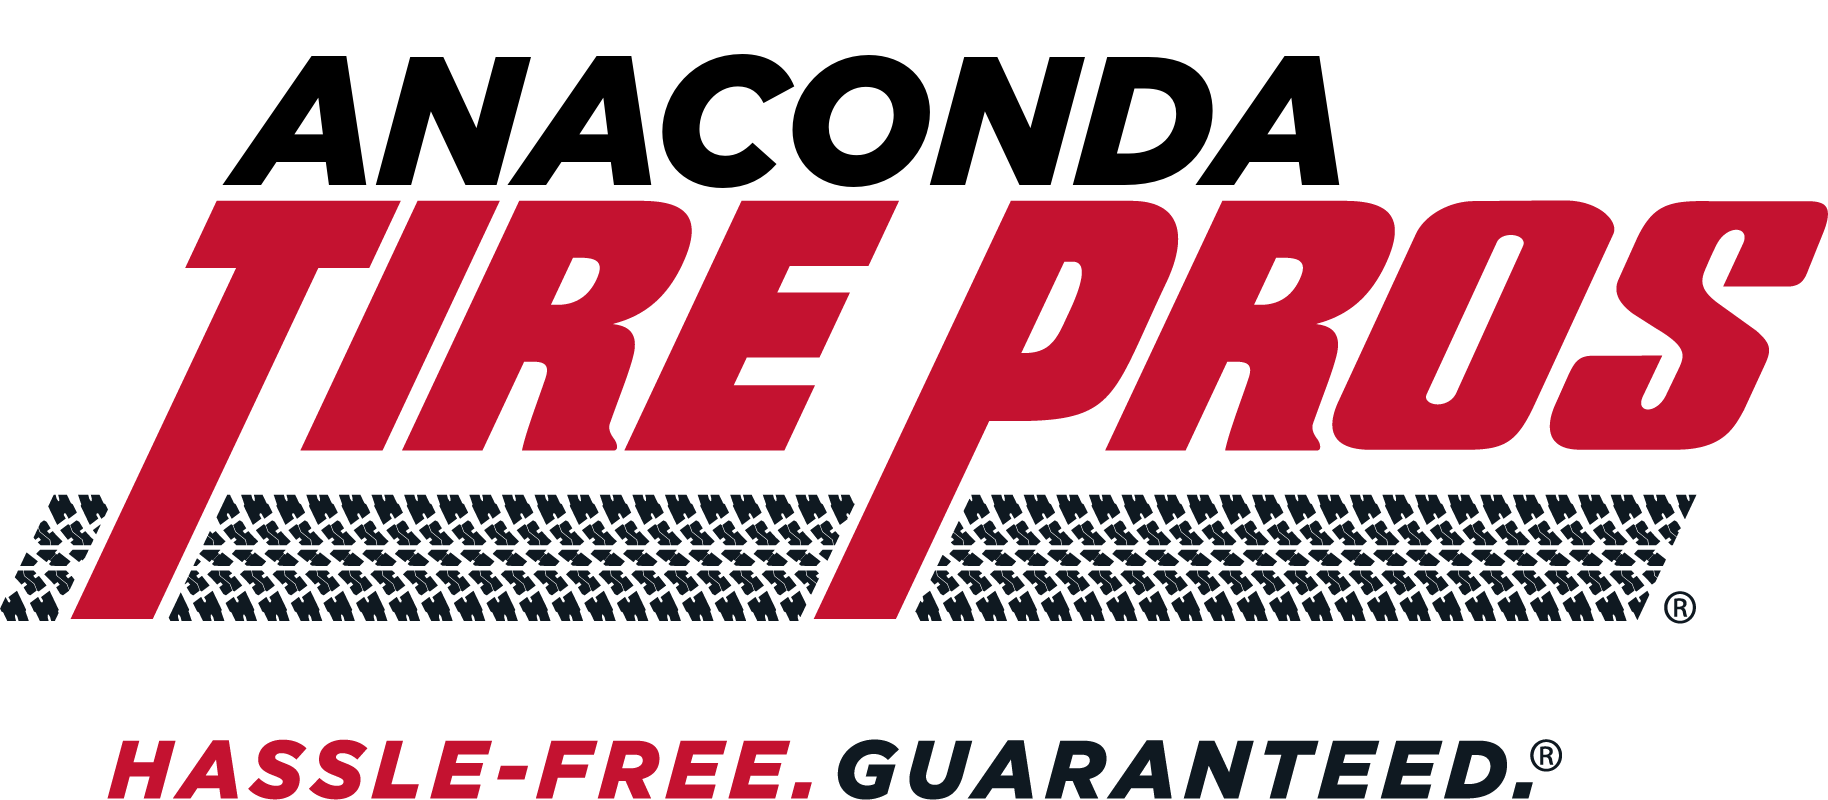 Anaconda Tire Pros